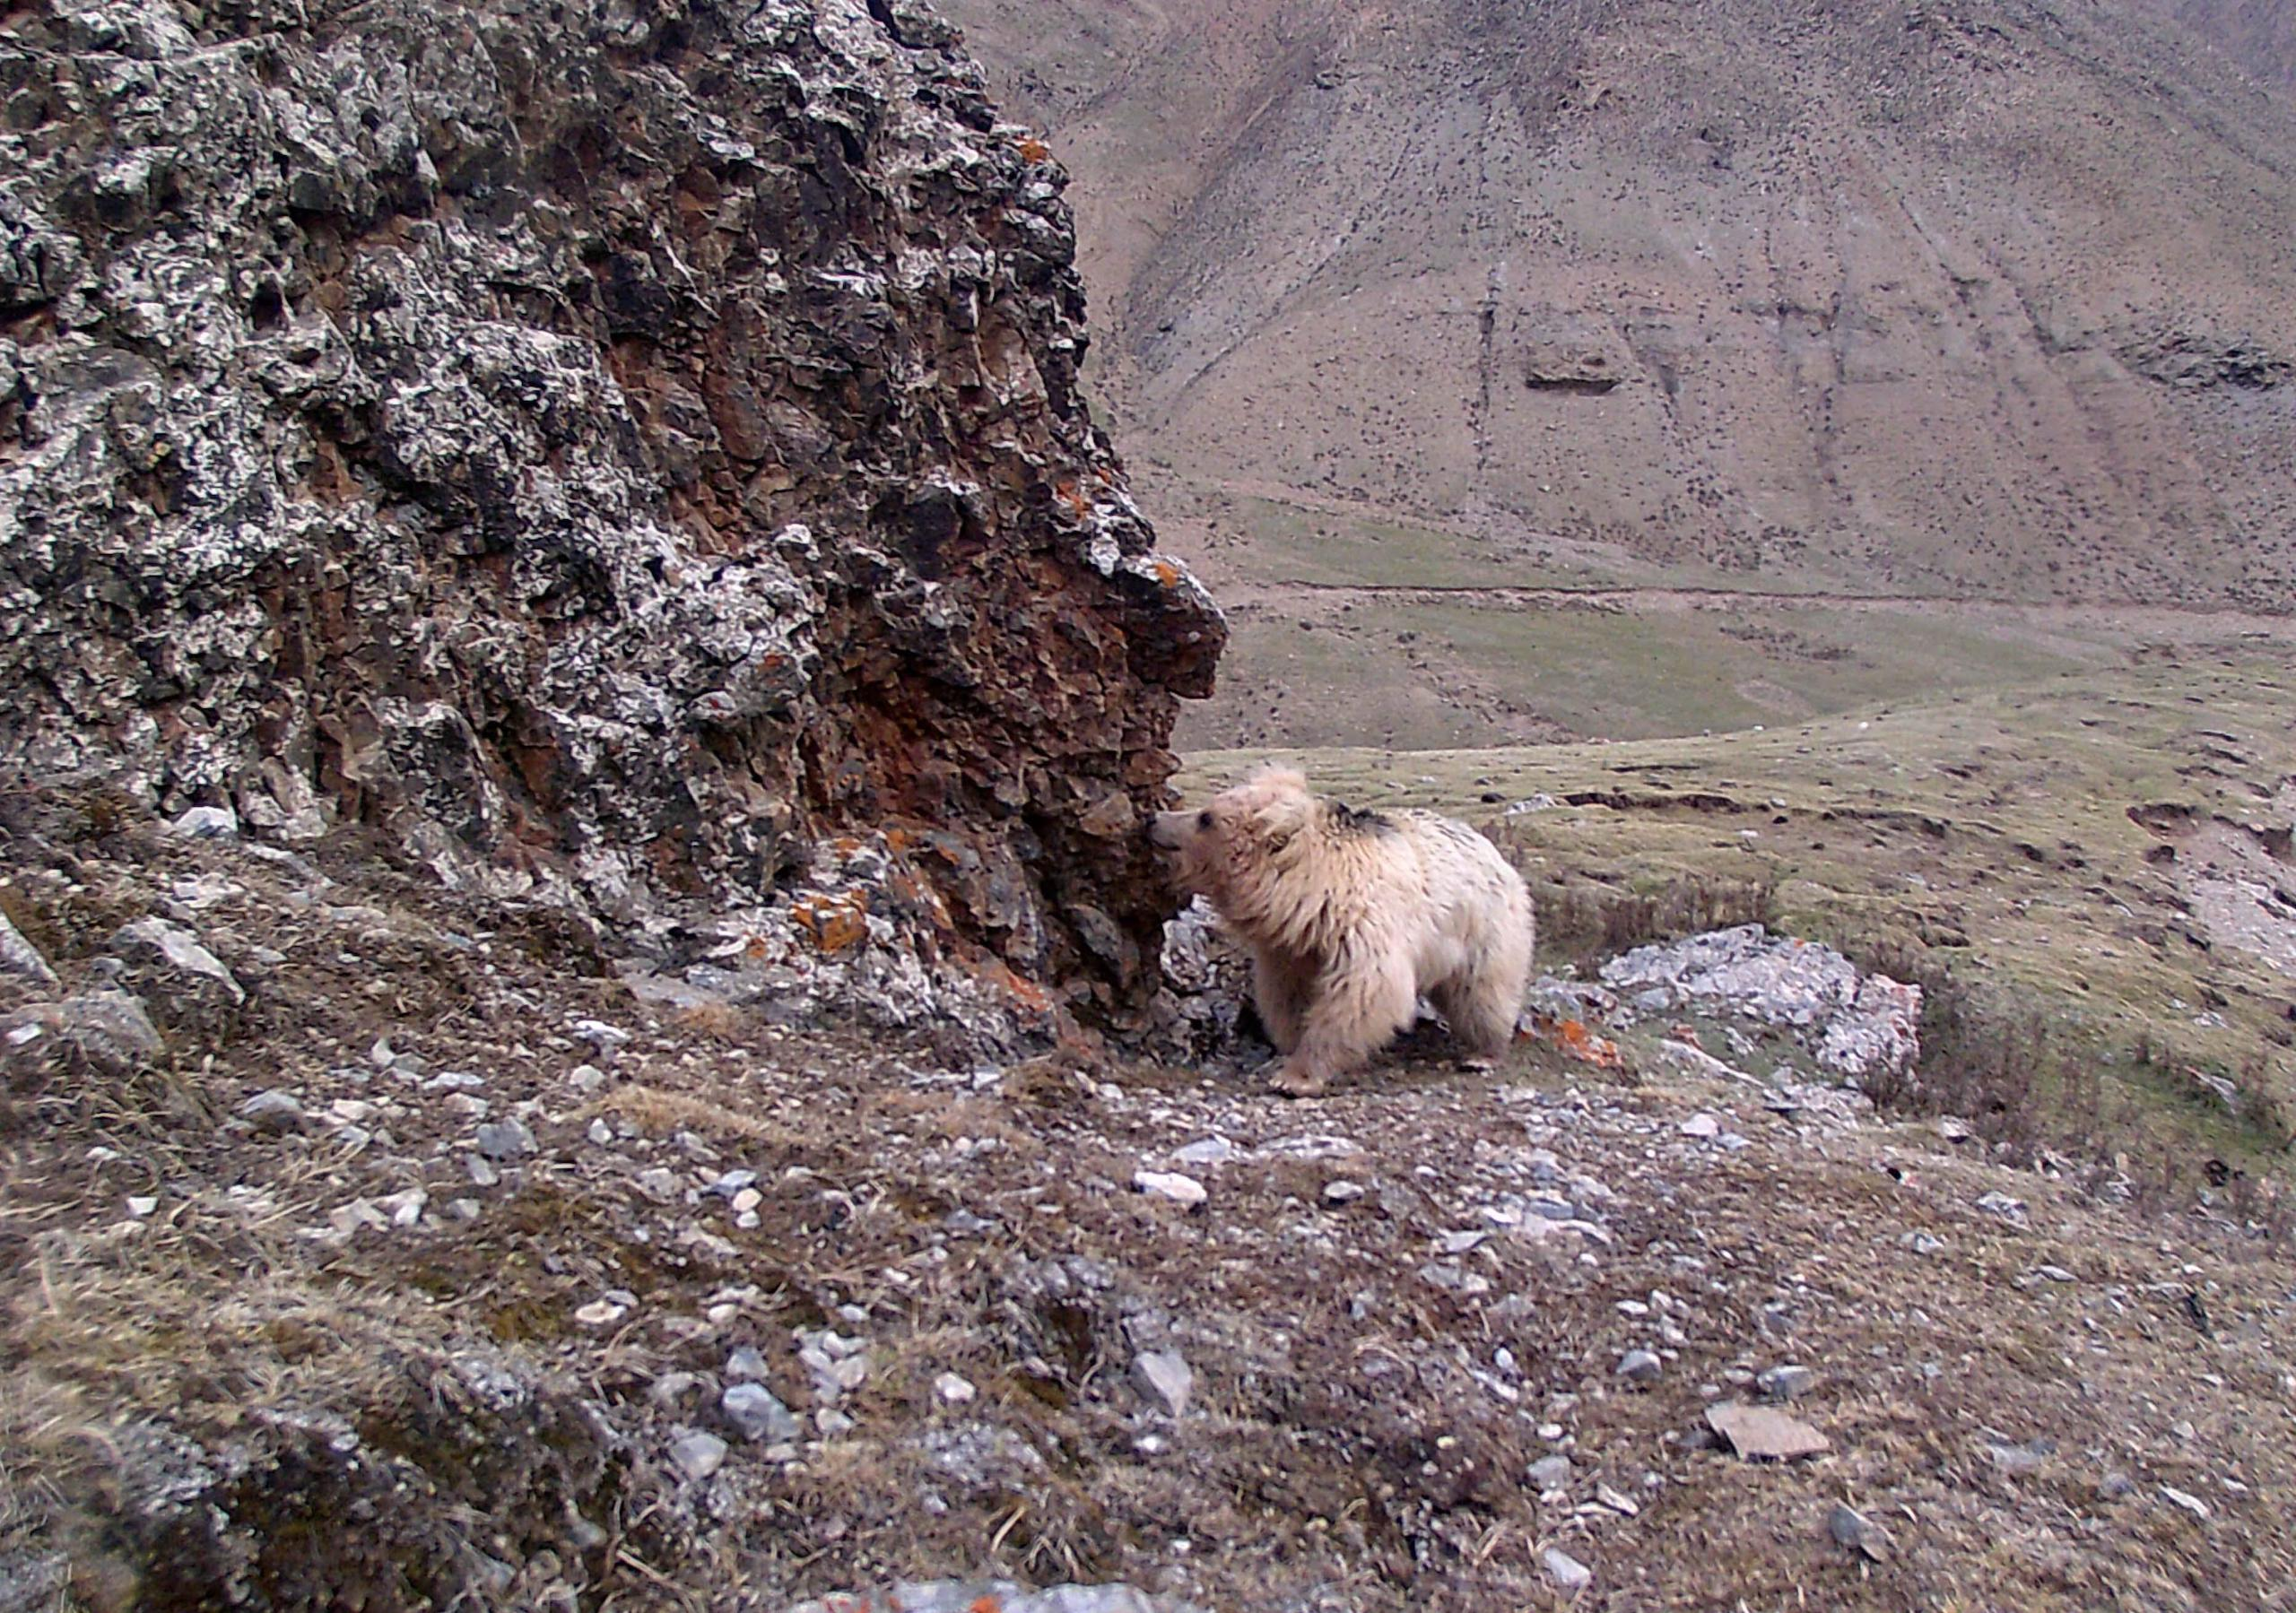 A brown bear is pictured by infrared camera in Qilianshan National Nature Reserve